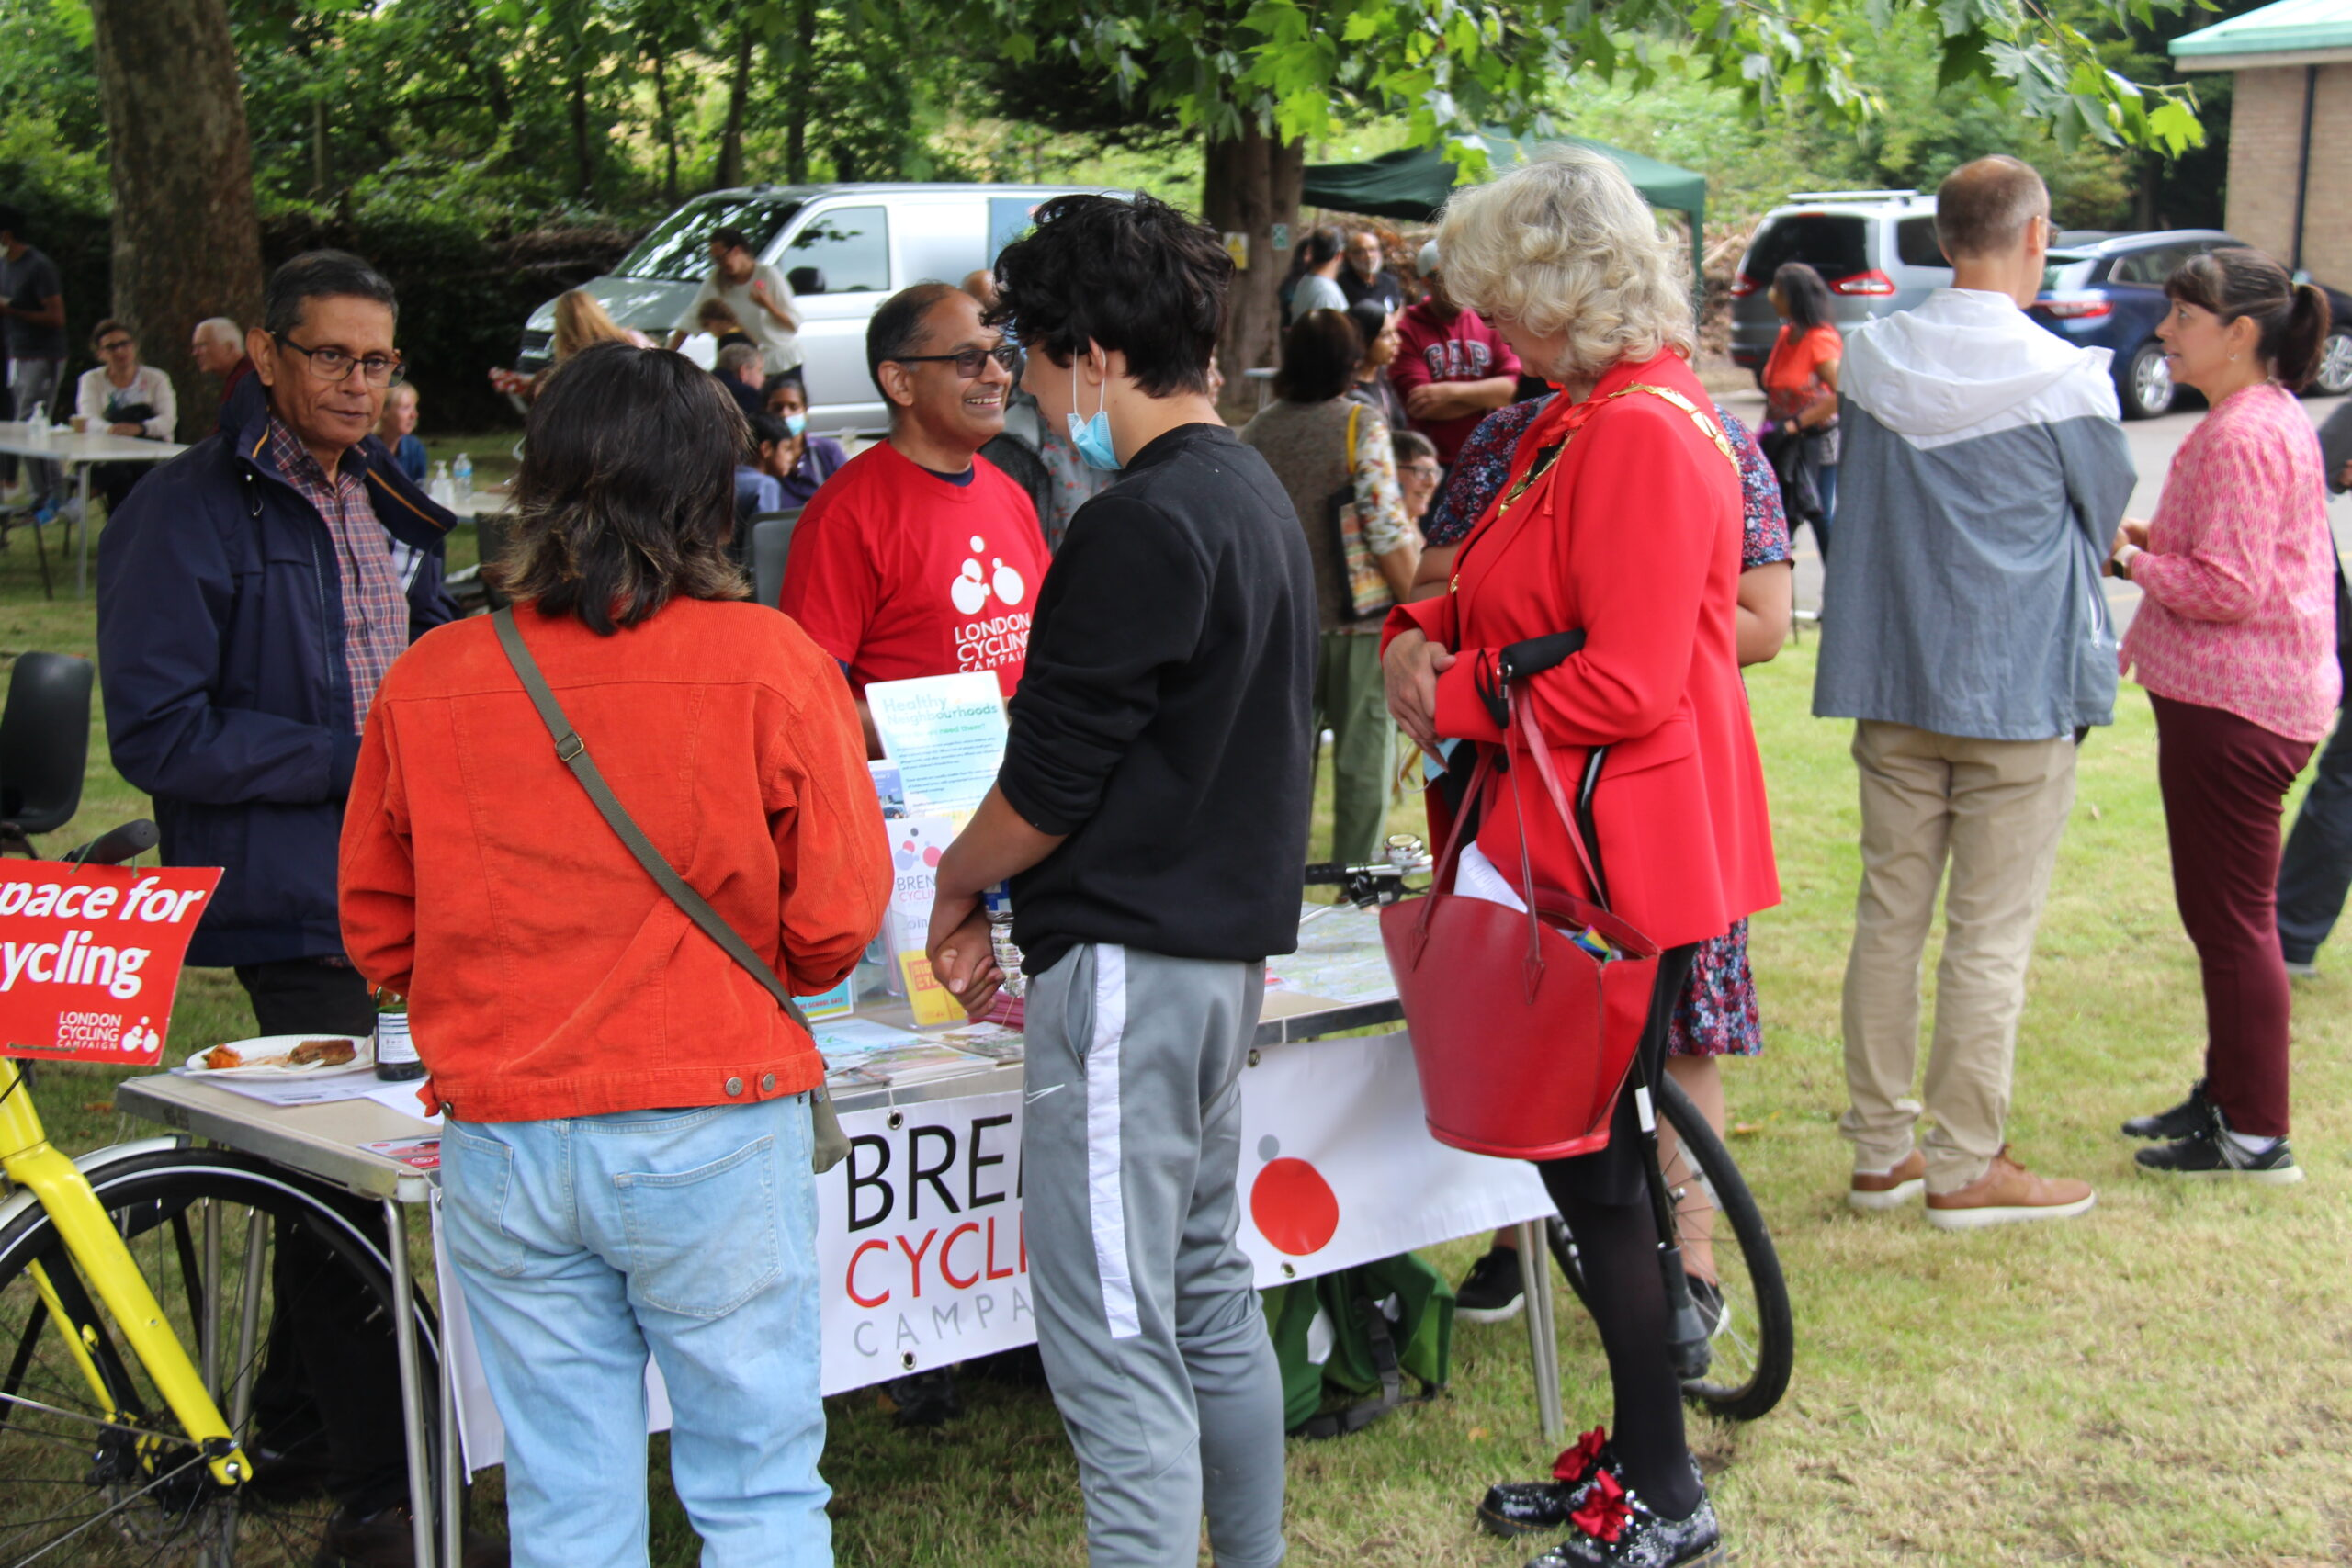 Brent Cycling Campaign Stall | Brent Cycling Campaign